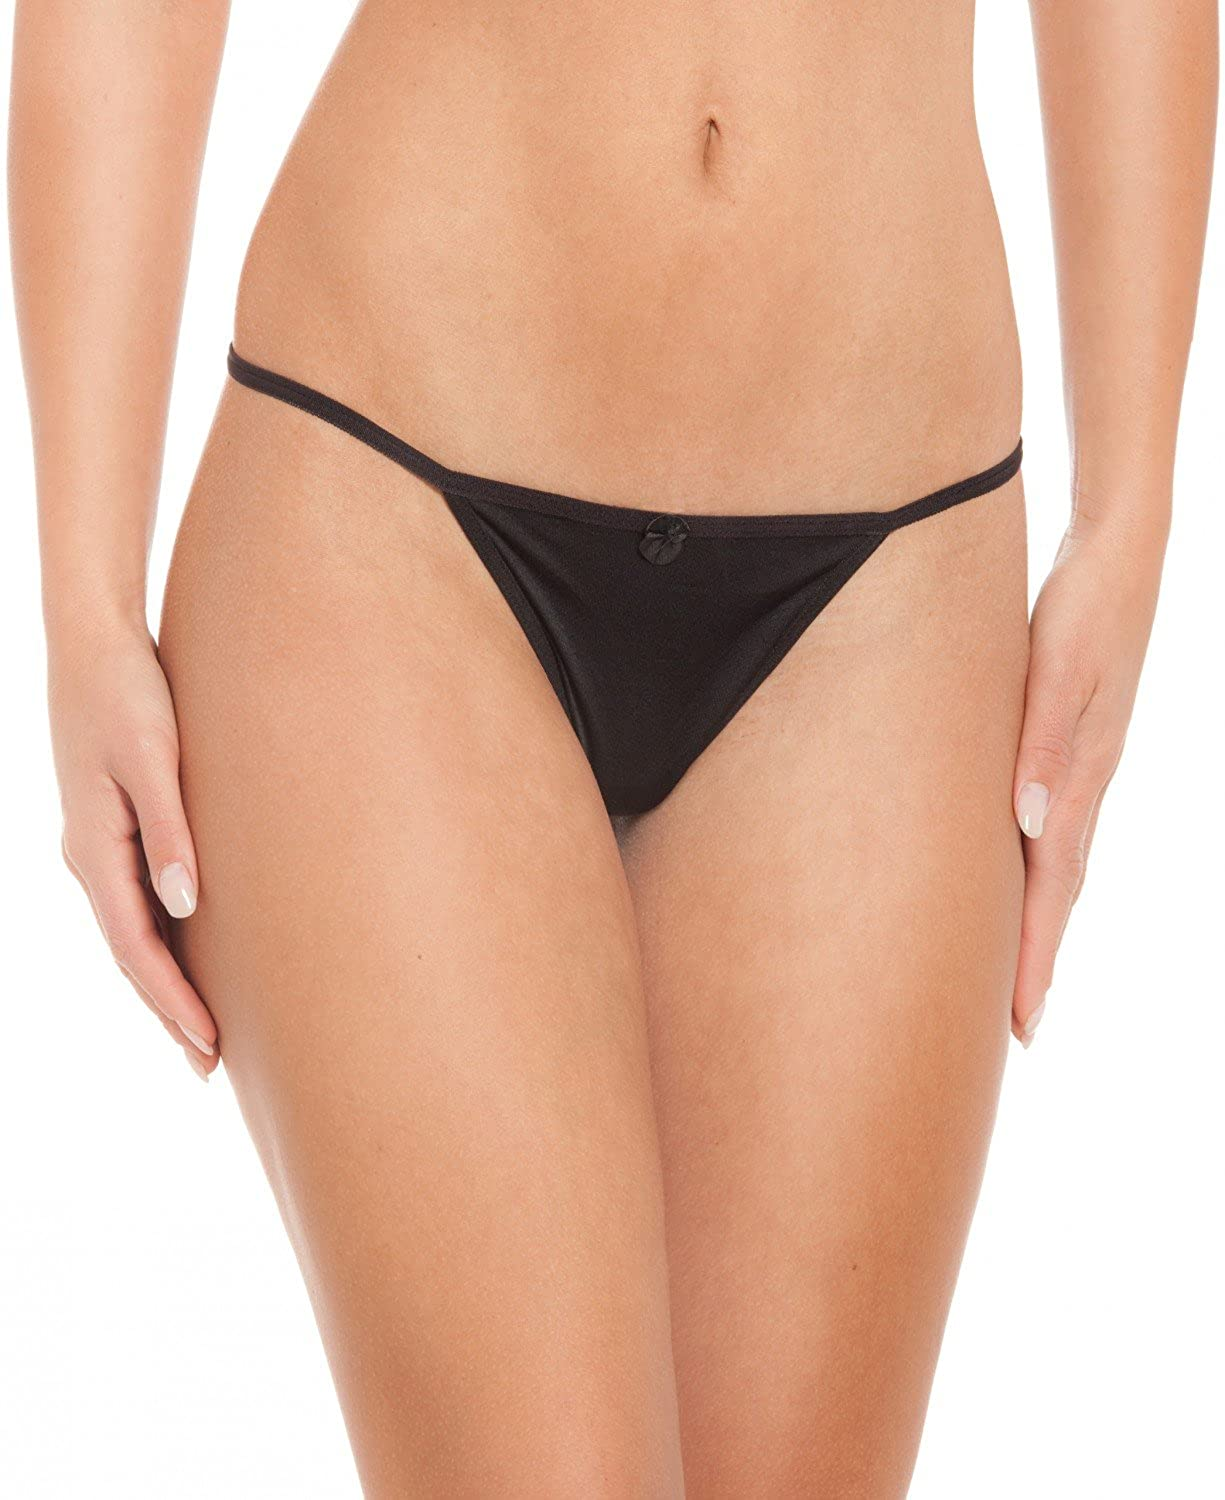 8-pack Strings THONG TANGA with seductive lace details